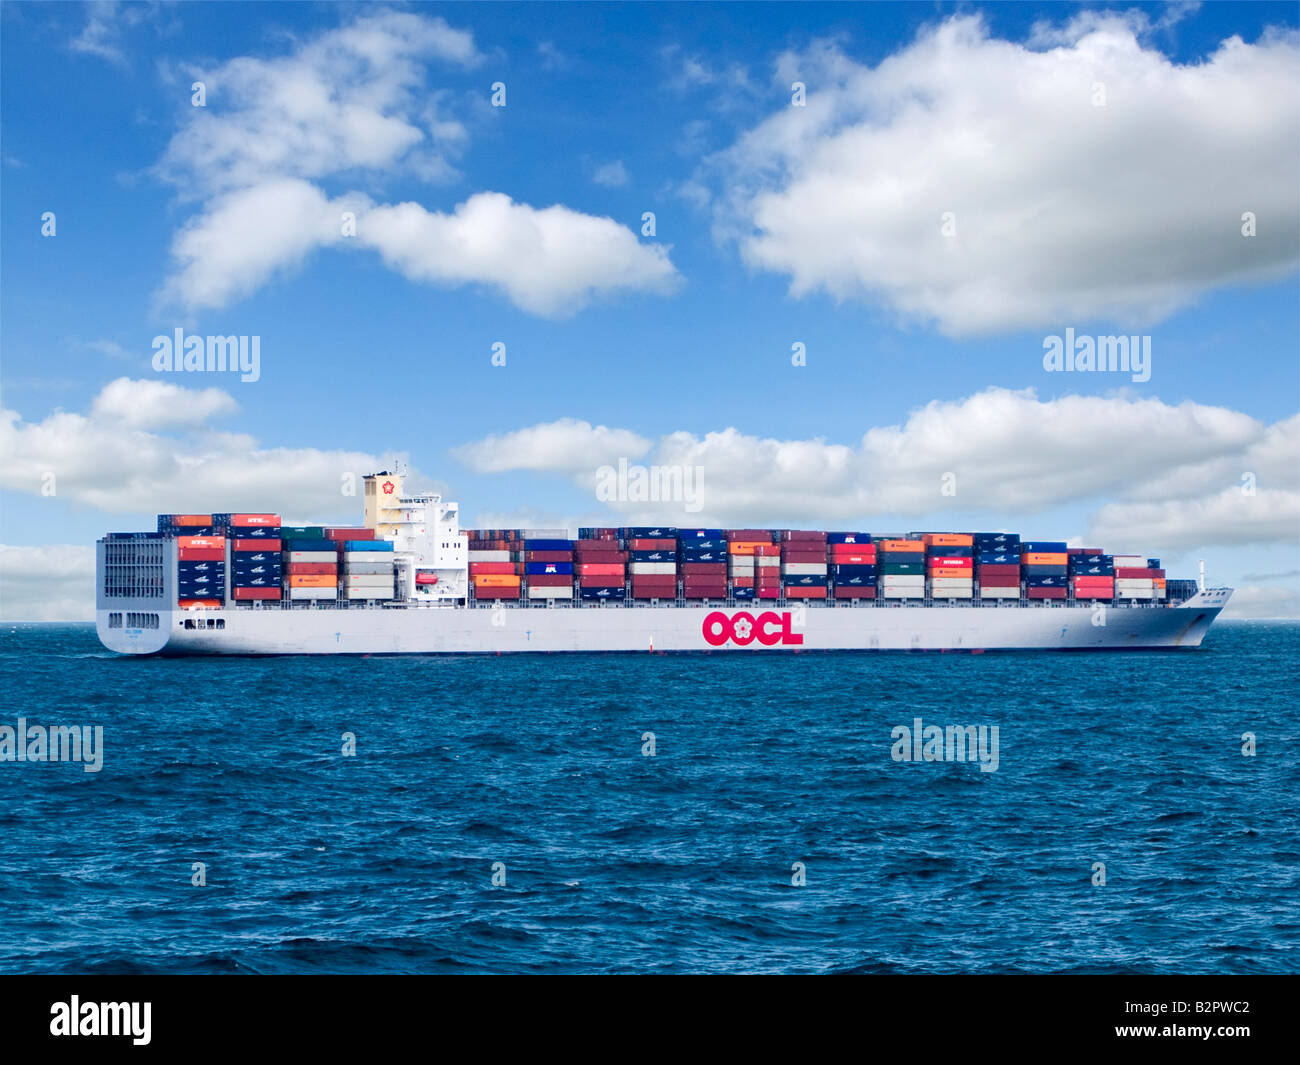 Container ship or cargo ship loaded with shipping containers sailing at sea ocean mid English Channel UK - Stock Image